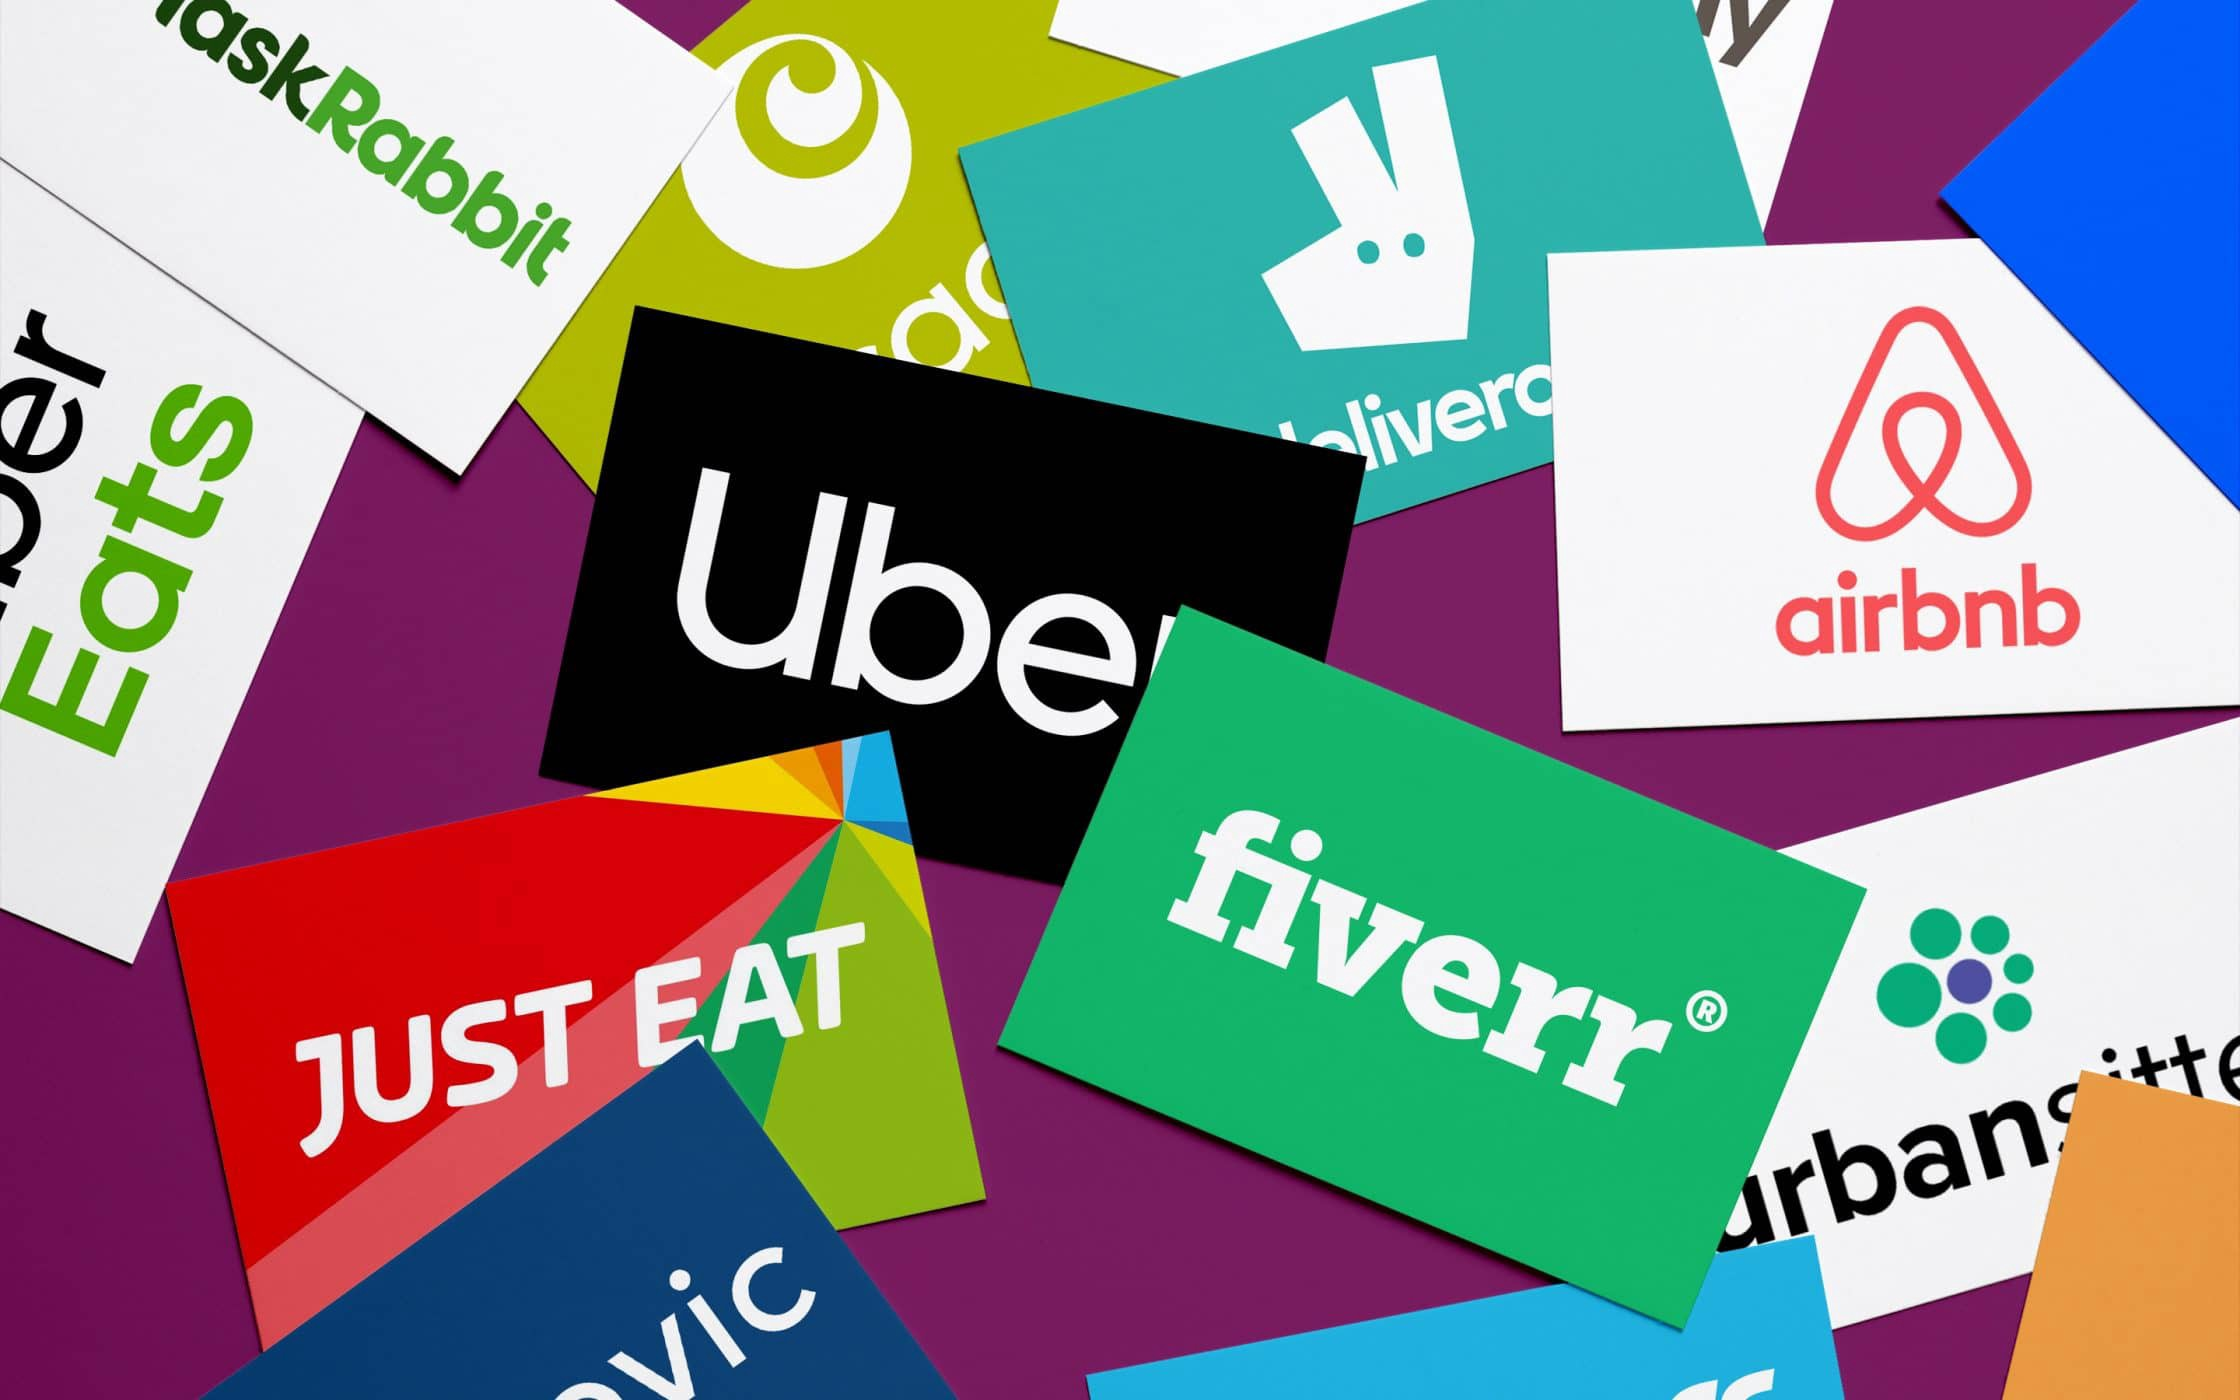 Collage of app-based job logos such as fiverr, Uber, AirBNB, UberEats, and more.